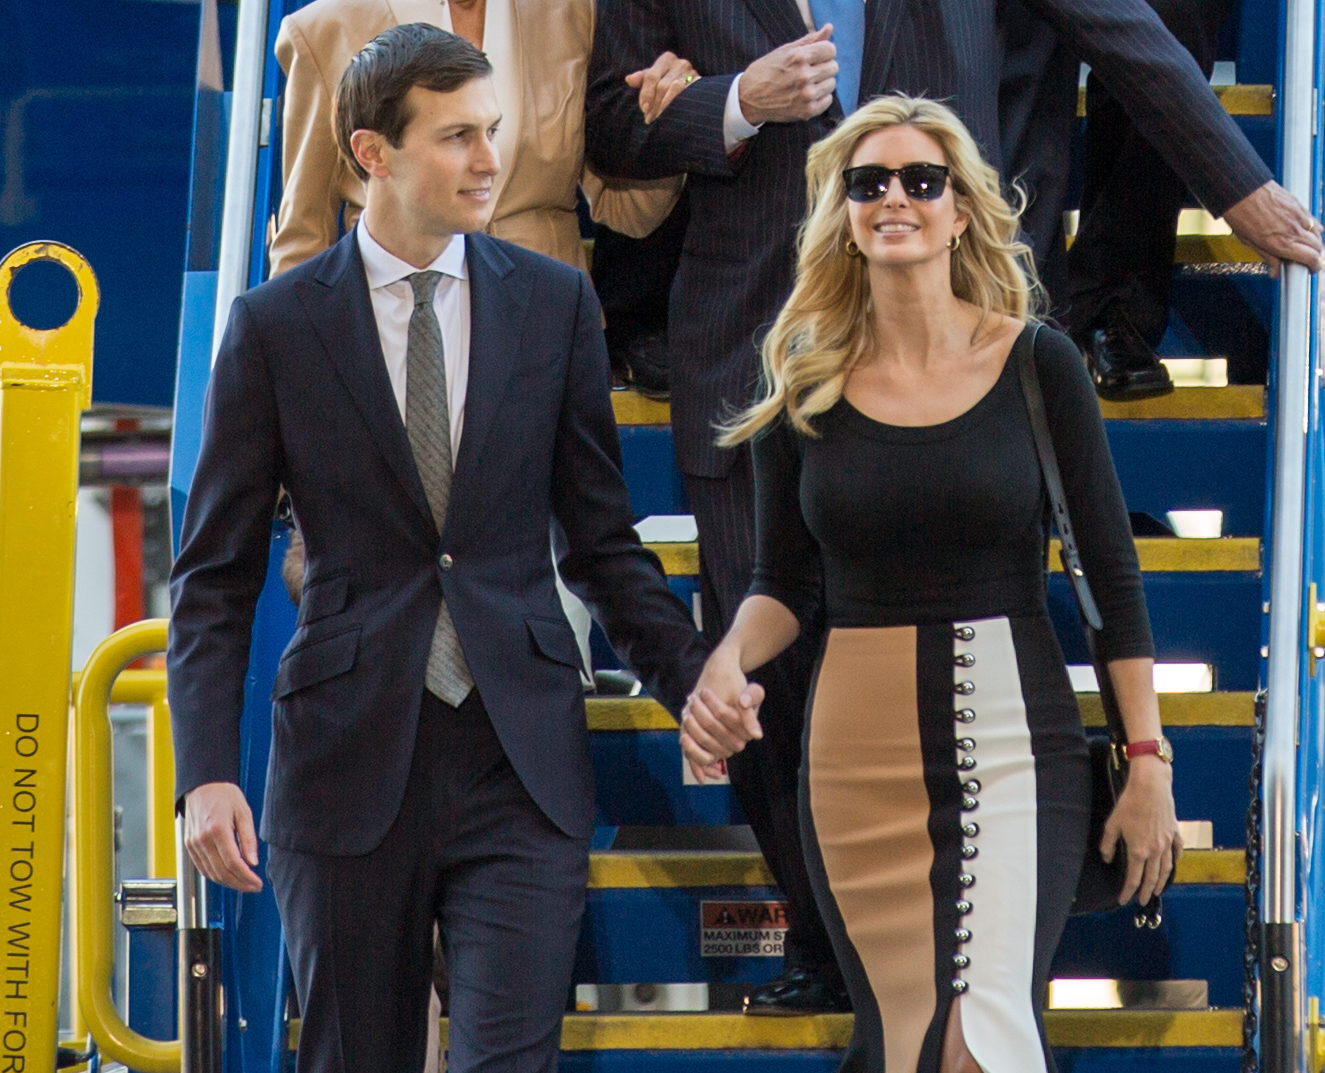 Kushner and Trump at an event in North Charleston, South Carolina, February  2017